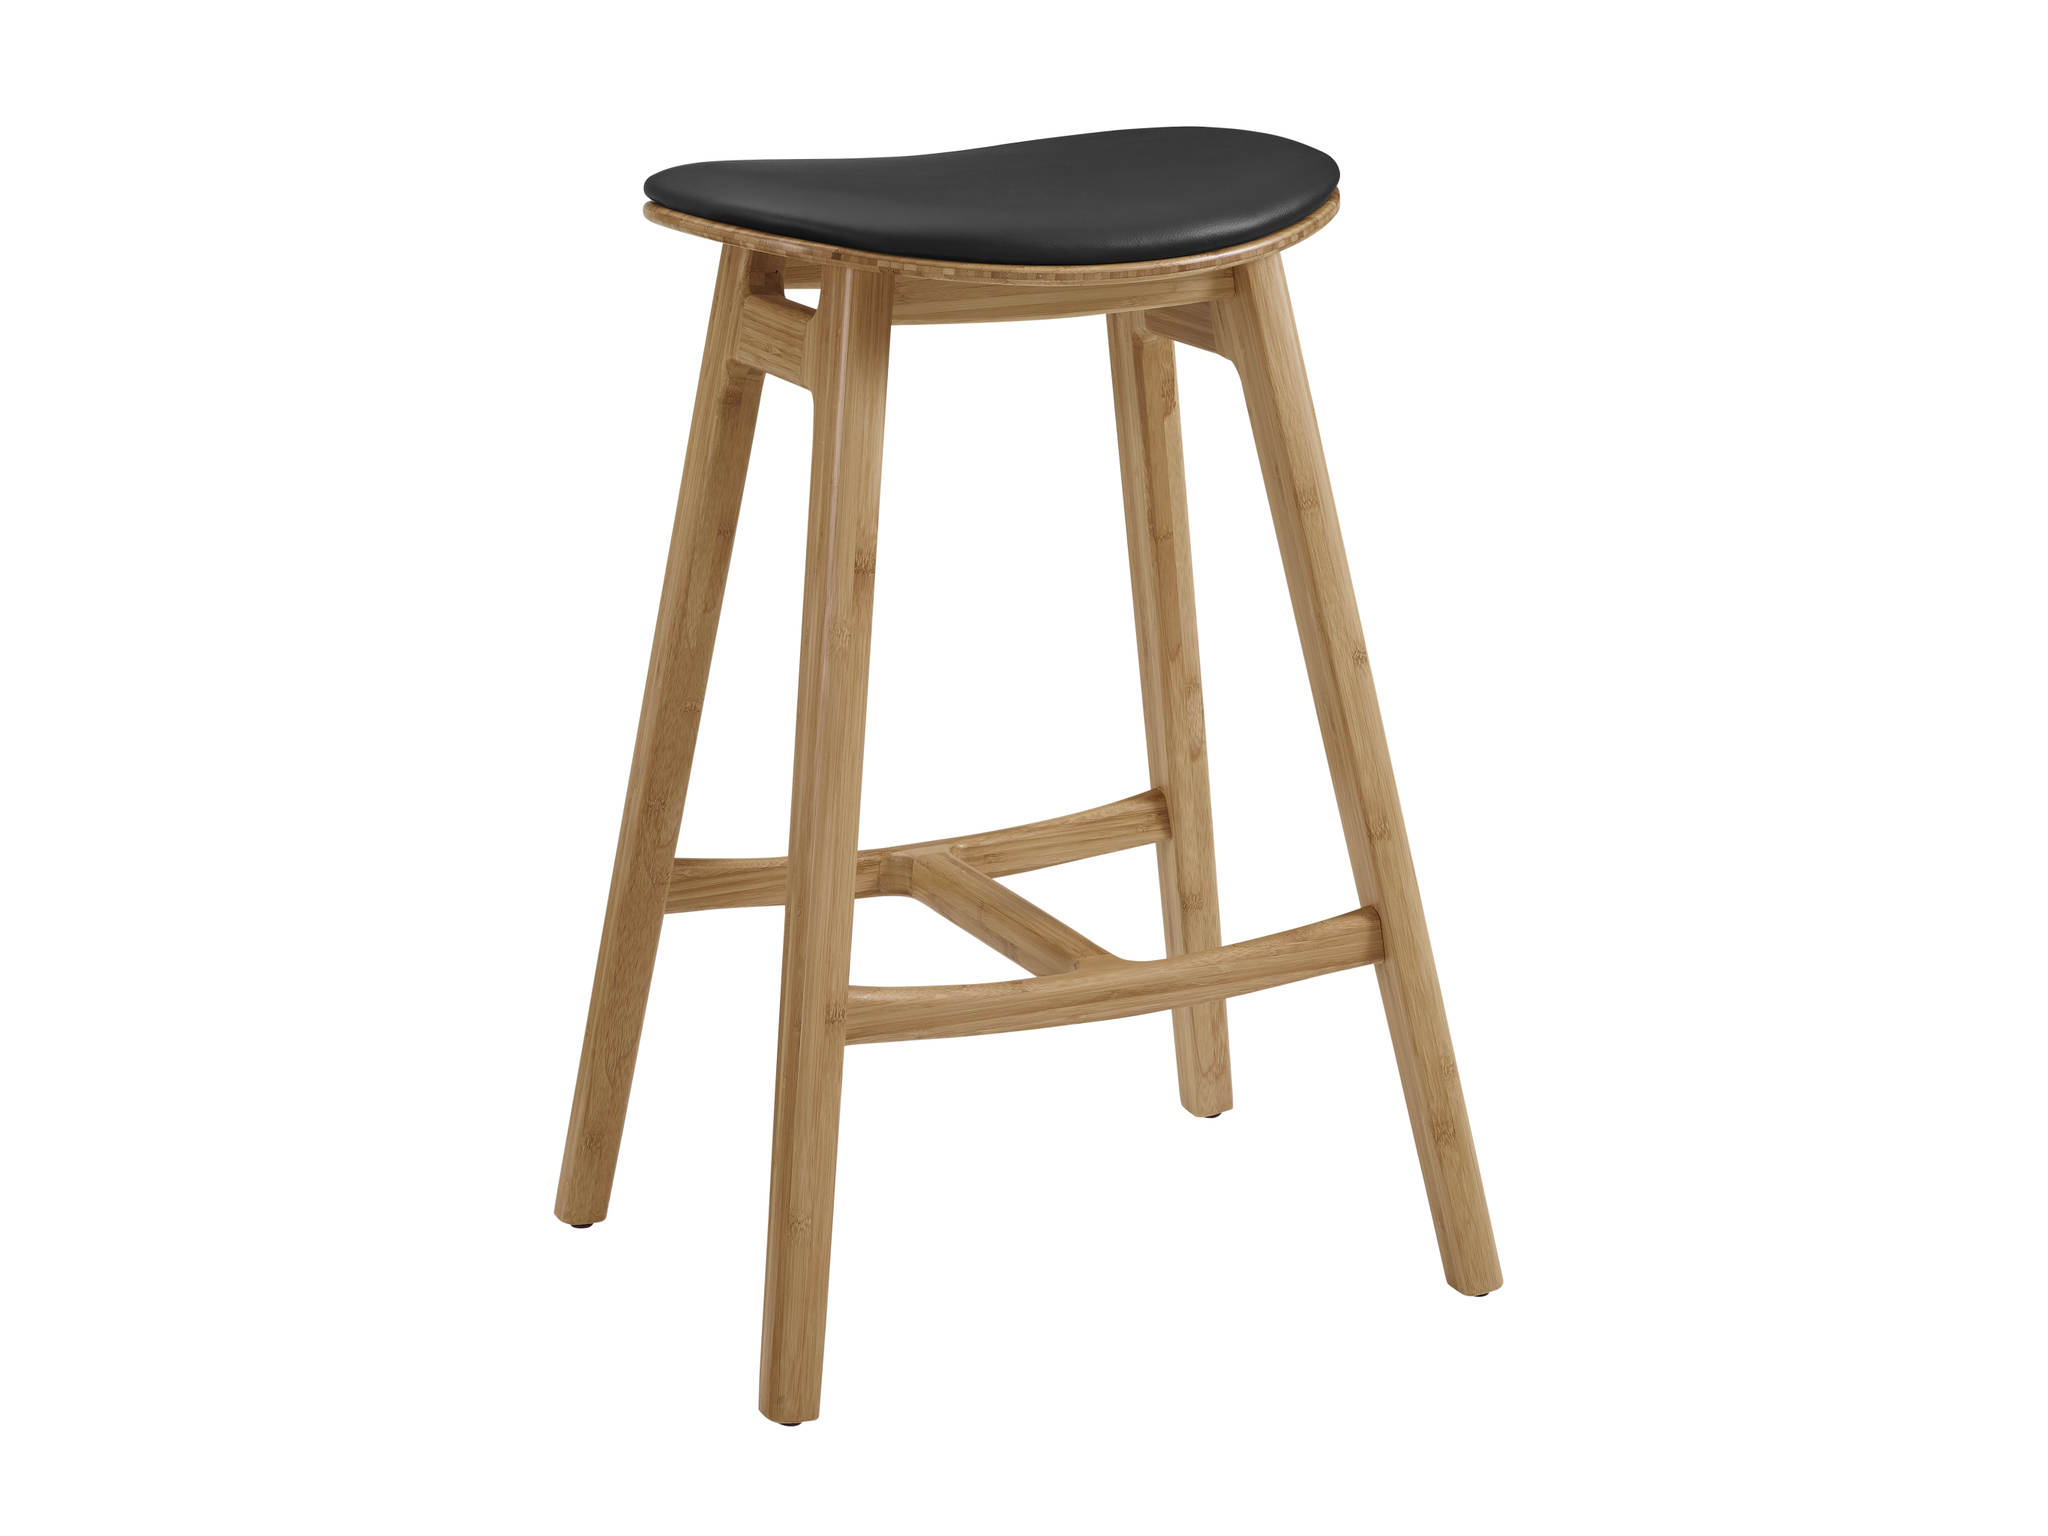 2 Greenington Skol Caramelized 30 Inch Counter Height Bar Stools